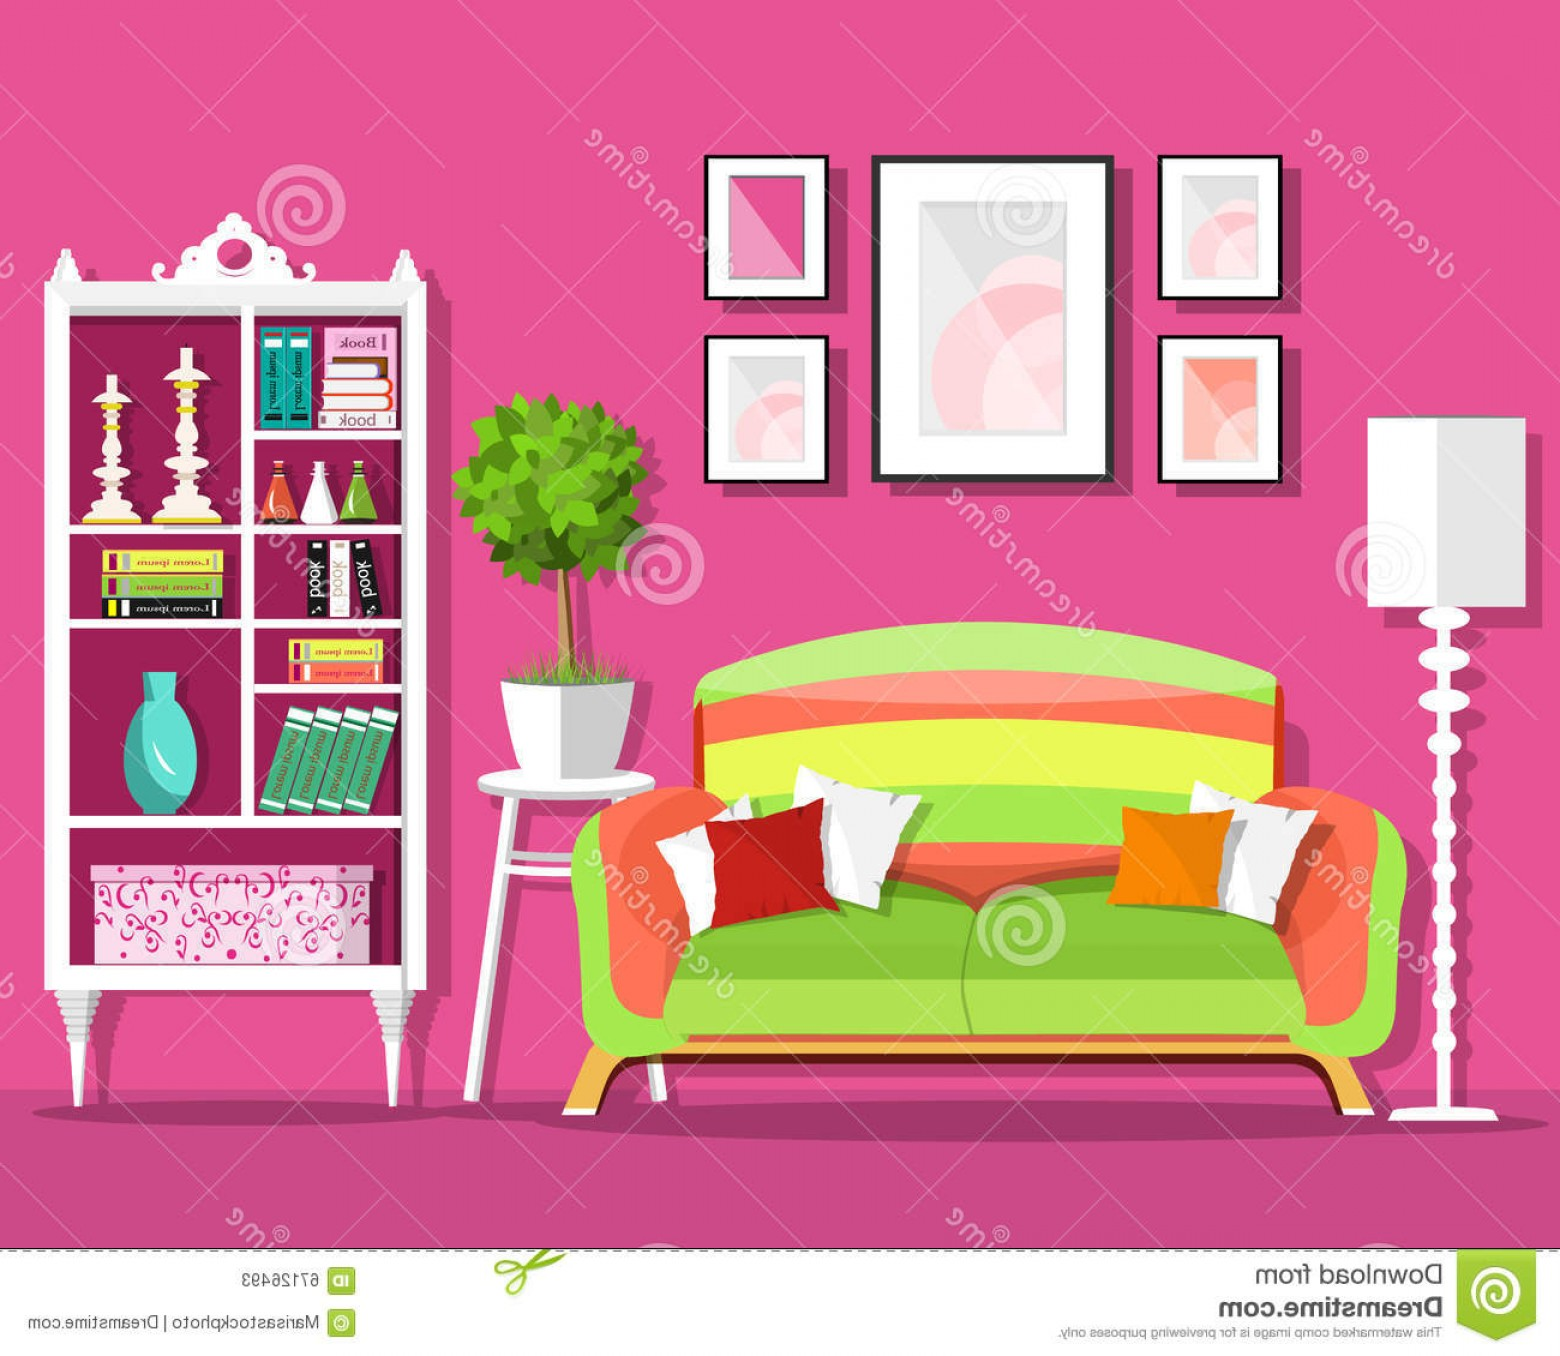 Furniture clipart living room clip art living room for Living room clipart